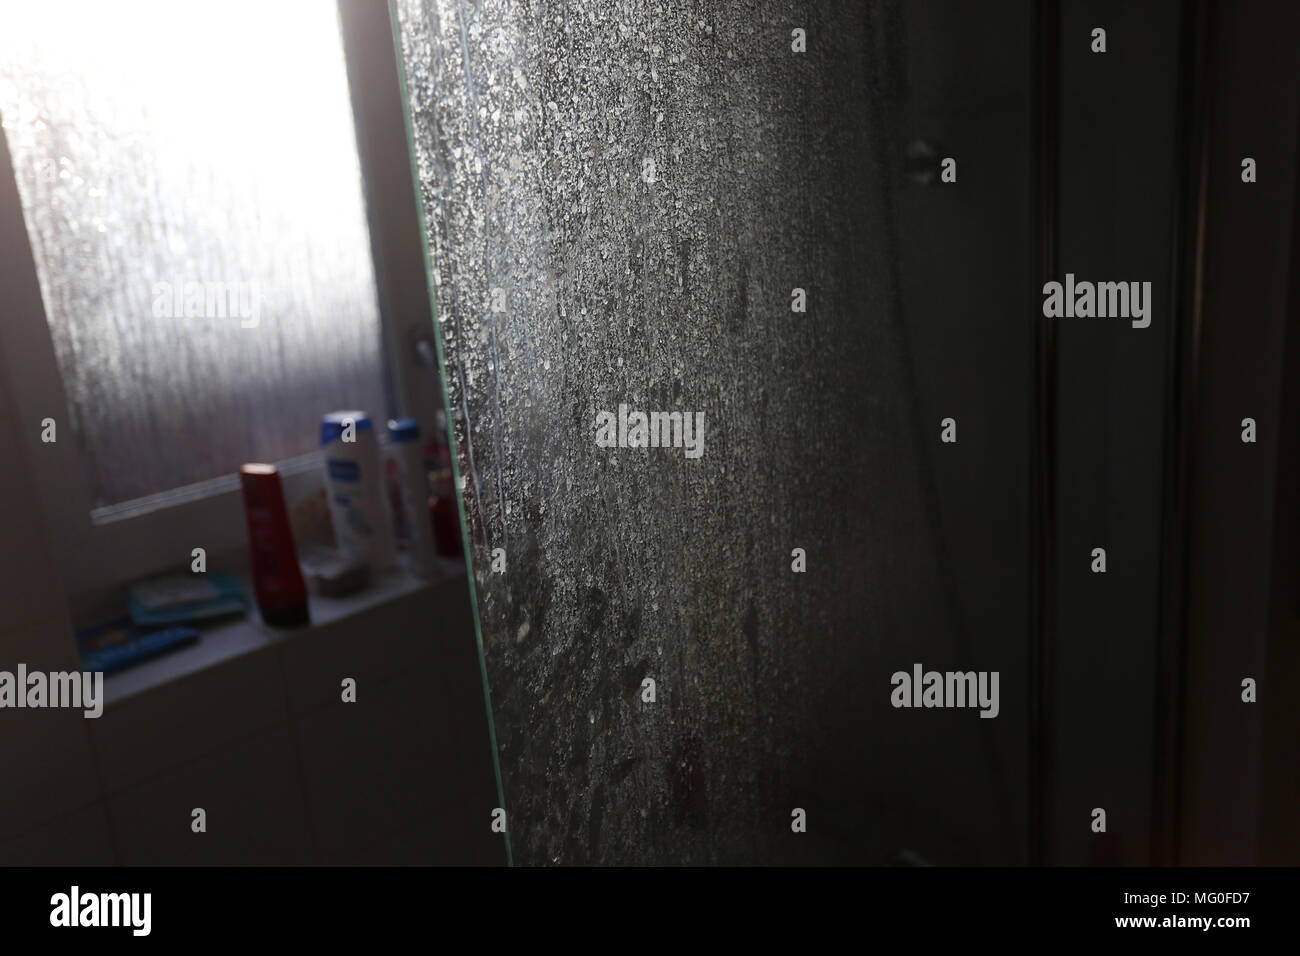 Water stains and Hard Water Spots pictured on a shower glass door in ...